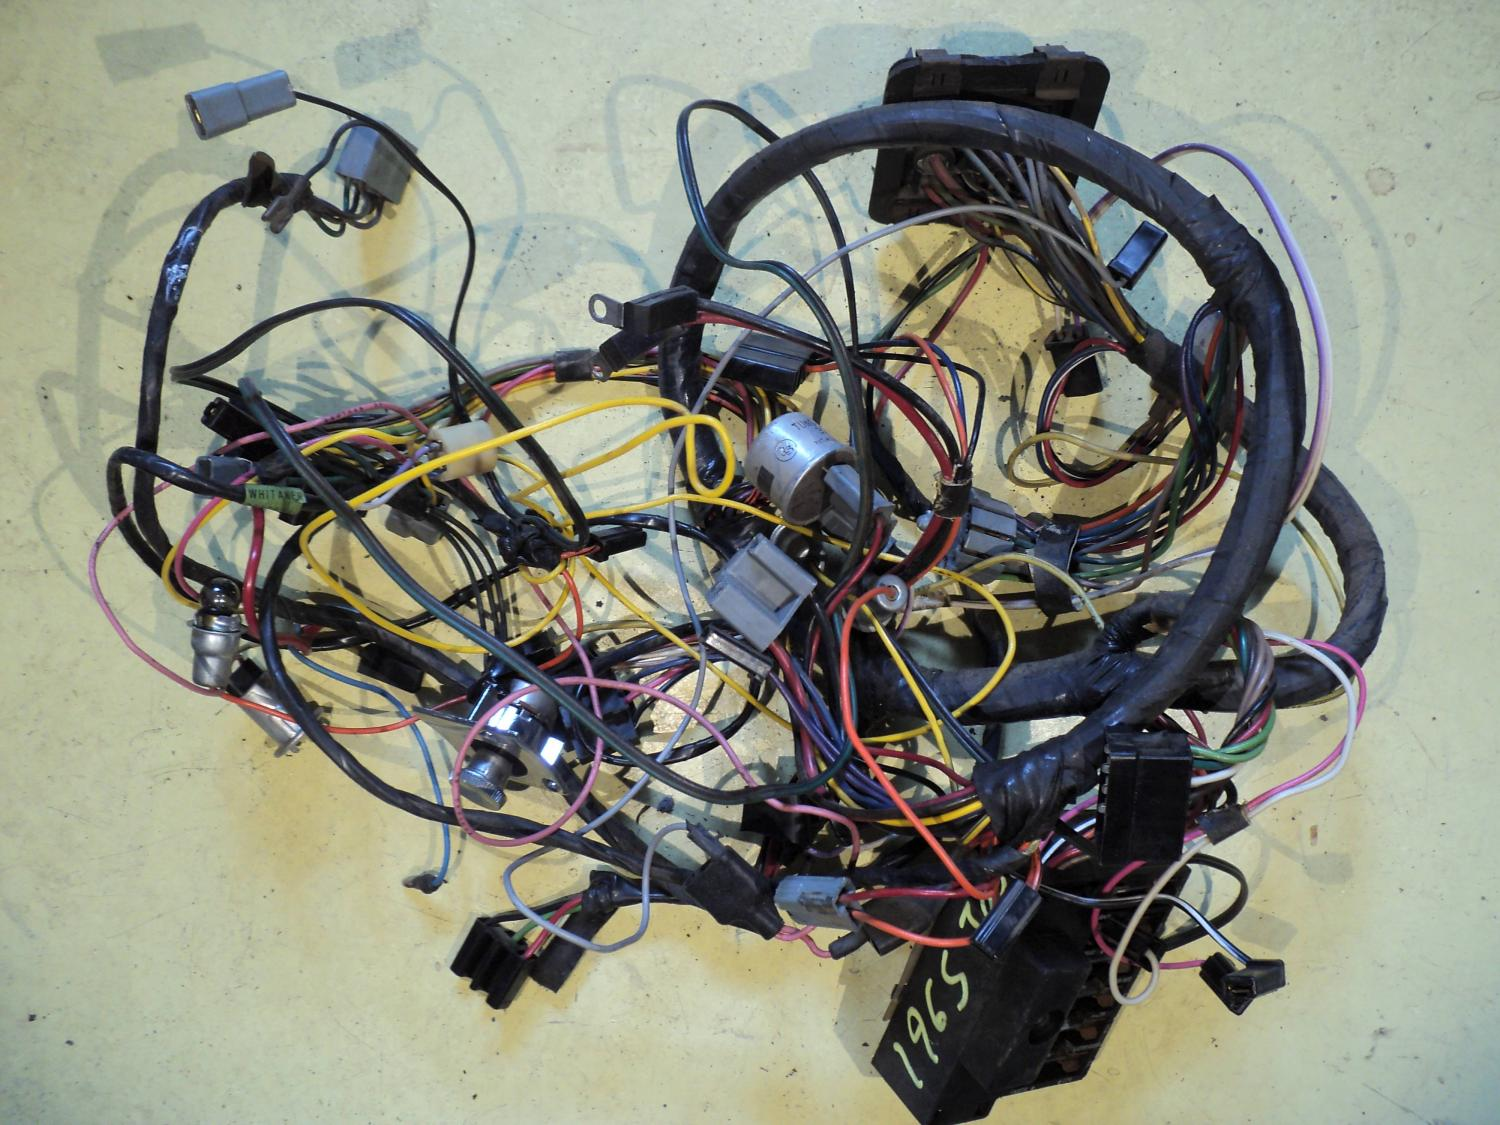 Chrysler Wiring Harness - Wiring Diagram & Cable Management on